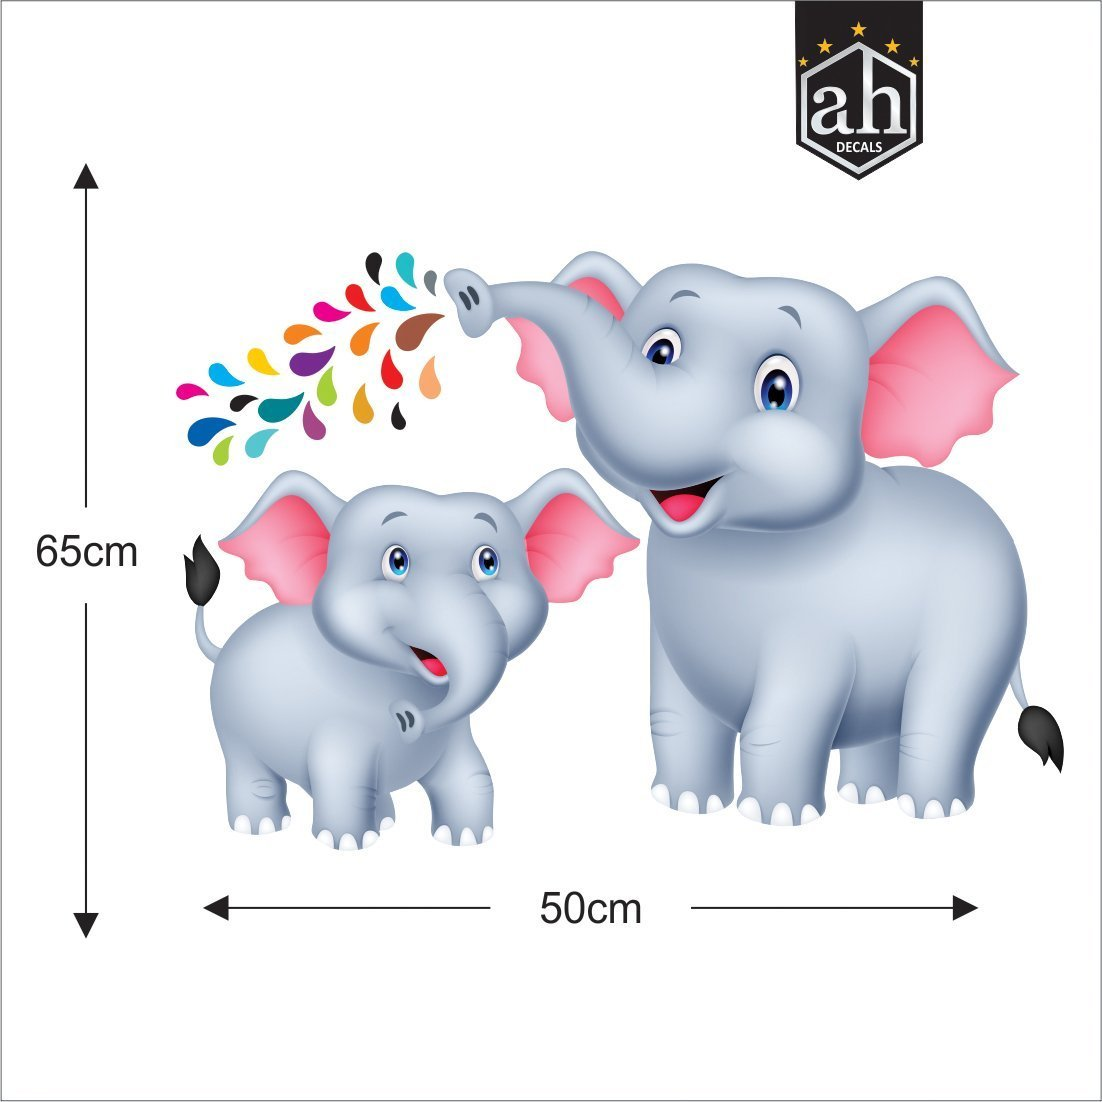 - Buy AH Decals Animated 3D Jungle Safari Elephant Cartoon Wall